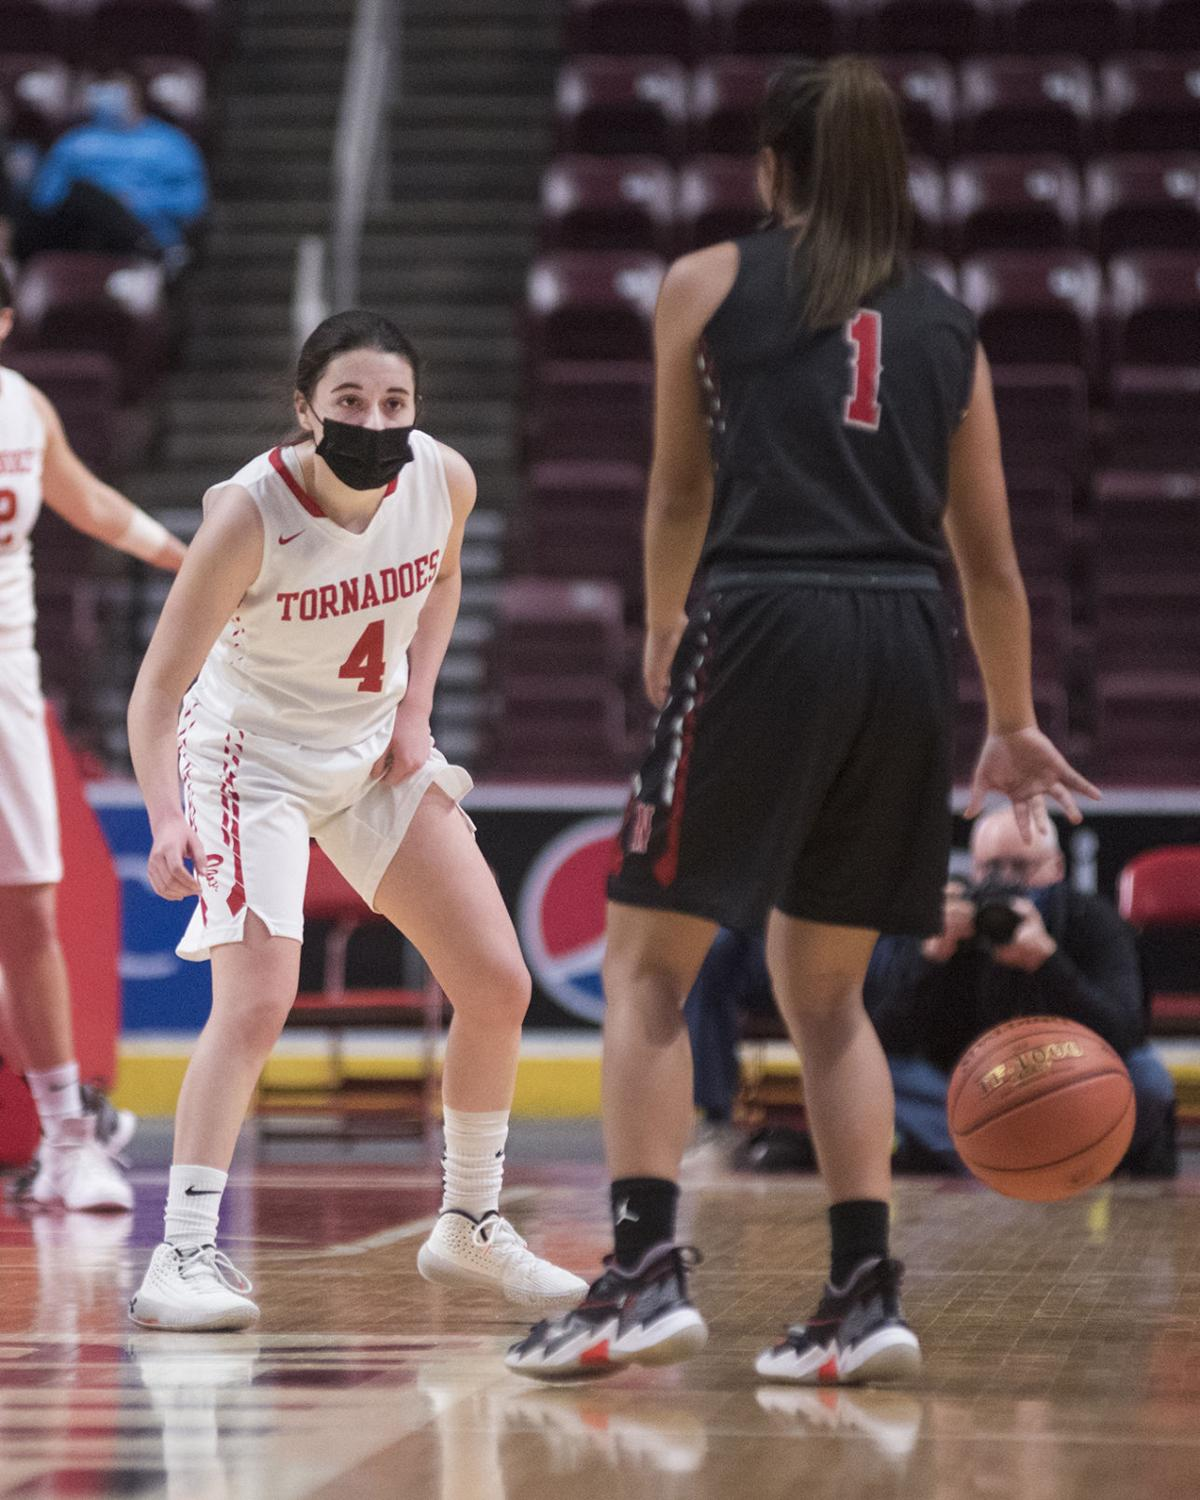 Mount Carmel Area girls basketball team earns first state title in program history